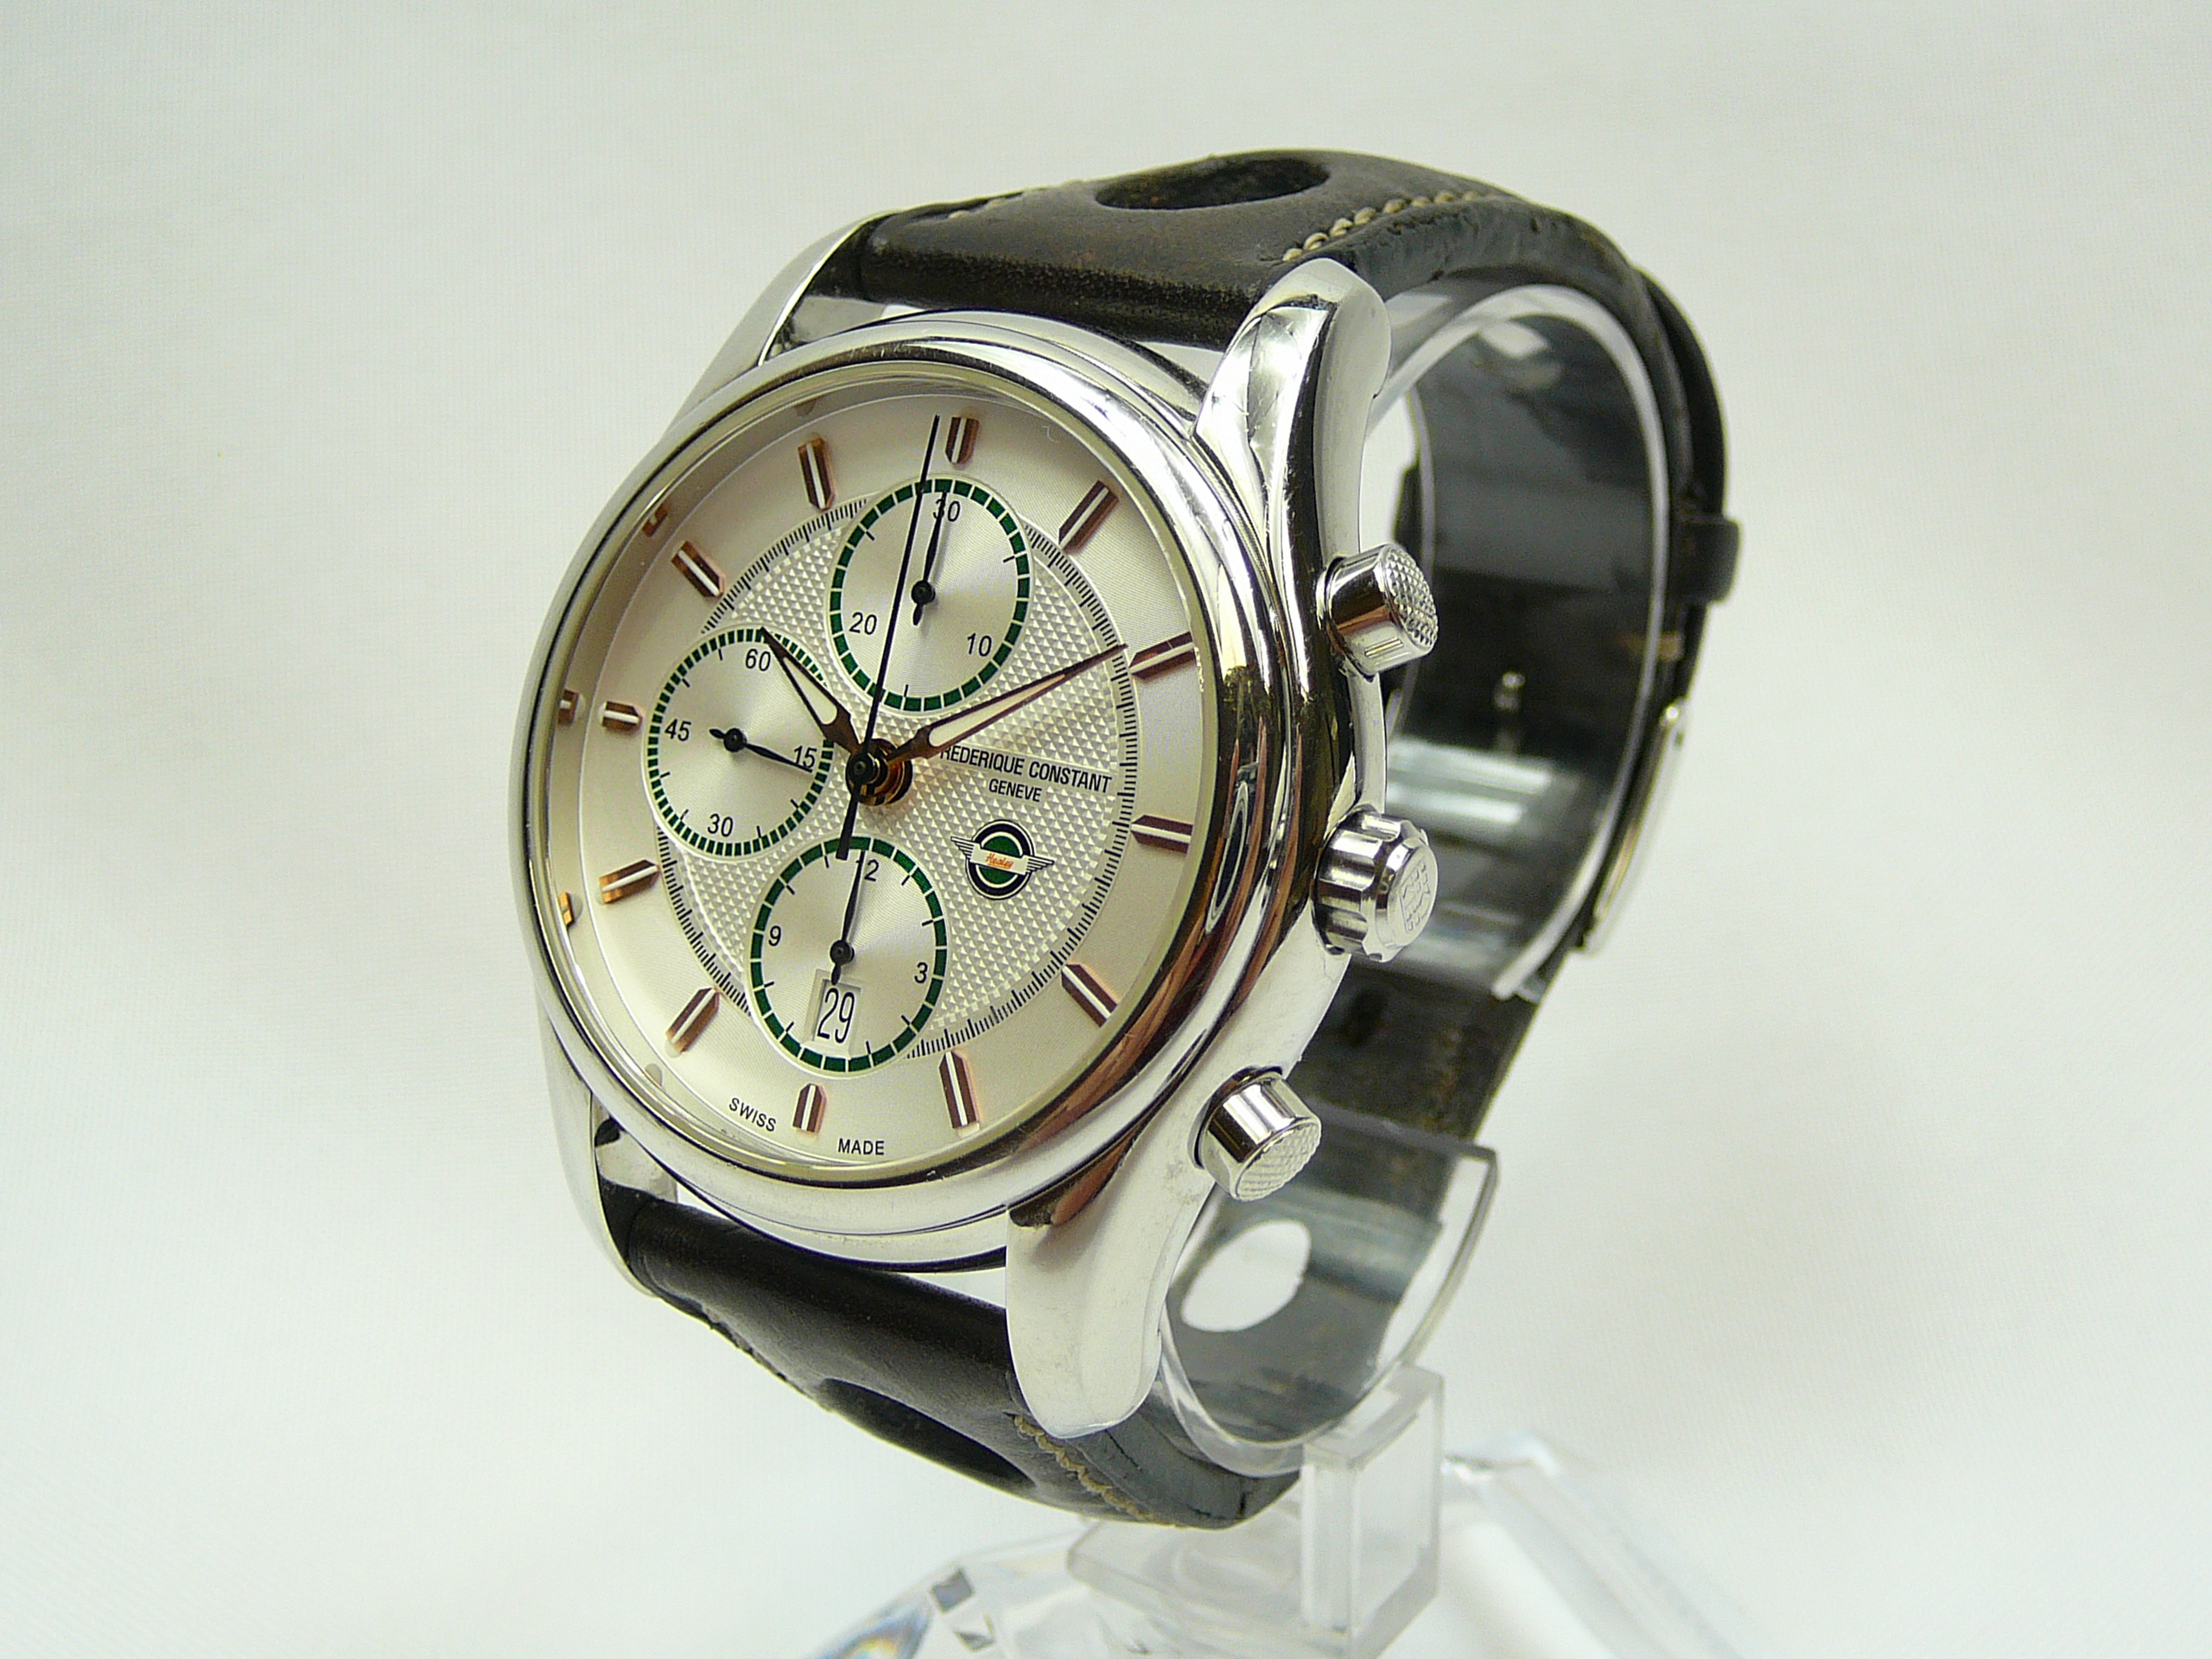 Gents Frederique Constant Wrist Watch